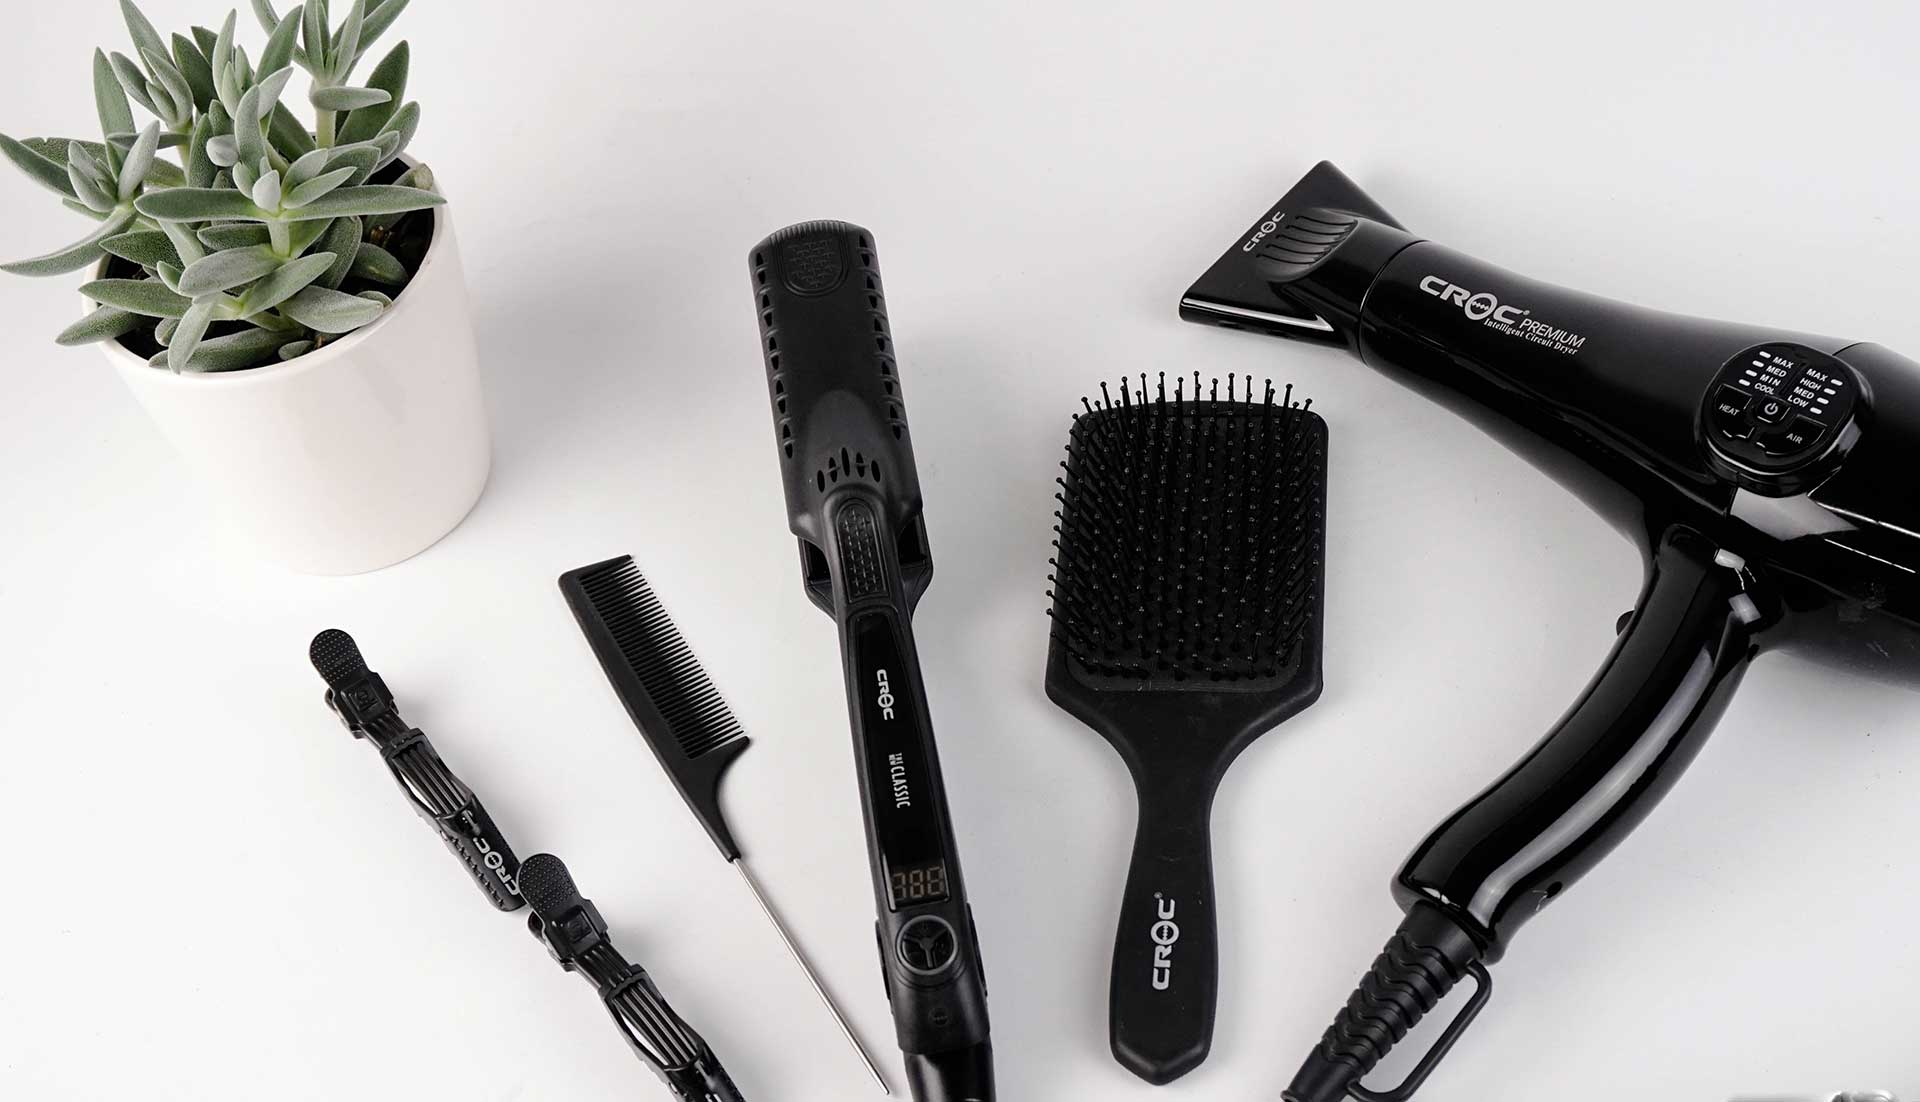 hair styling tools on a white background with a small succulent plant